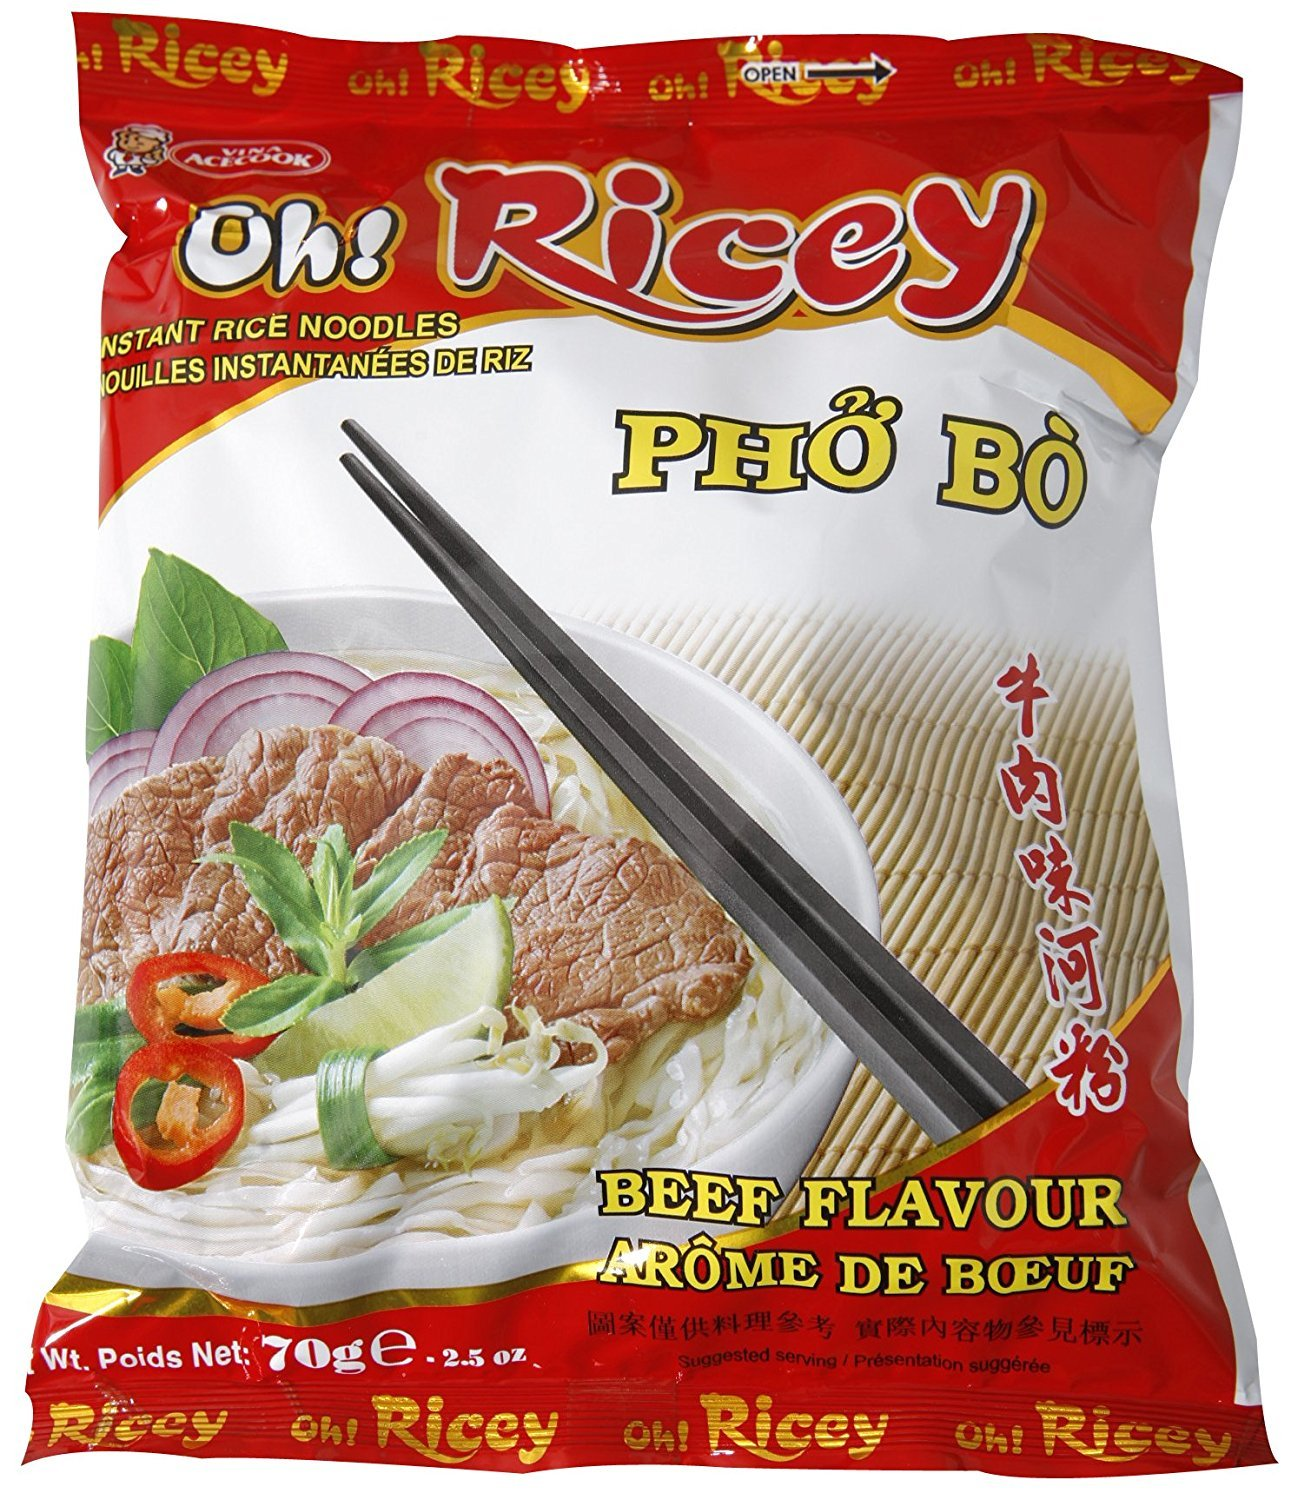 Oh! Ricey Instant Rice Noodle Pho Bo Soup (Beef Flavor) - 2.5 oz (Pack of 5) by Oh! Ricey